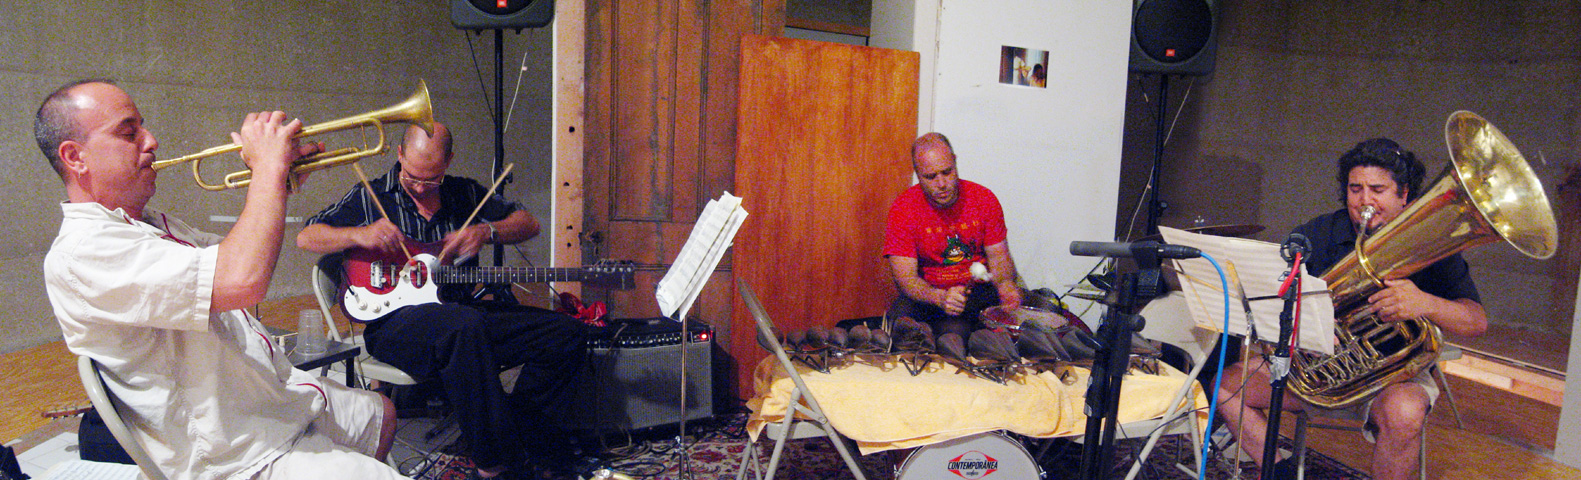 Spanish Fly With Steve Bernstein, Marcus Rojas, Dave Tronzo And Ben Perowsky - Issue Project Room 2005